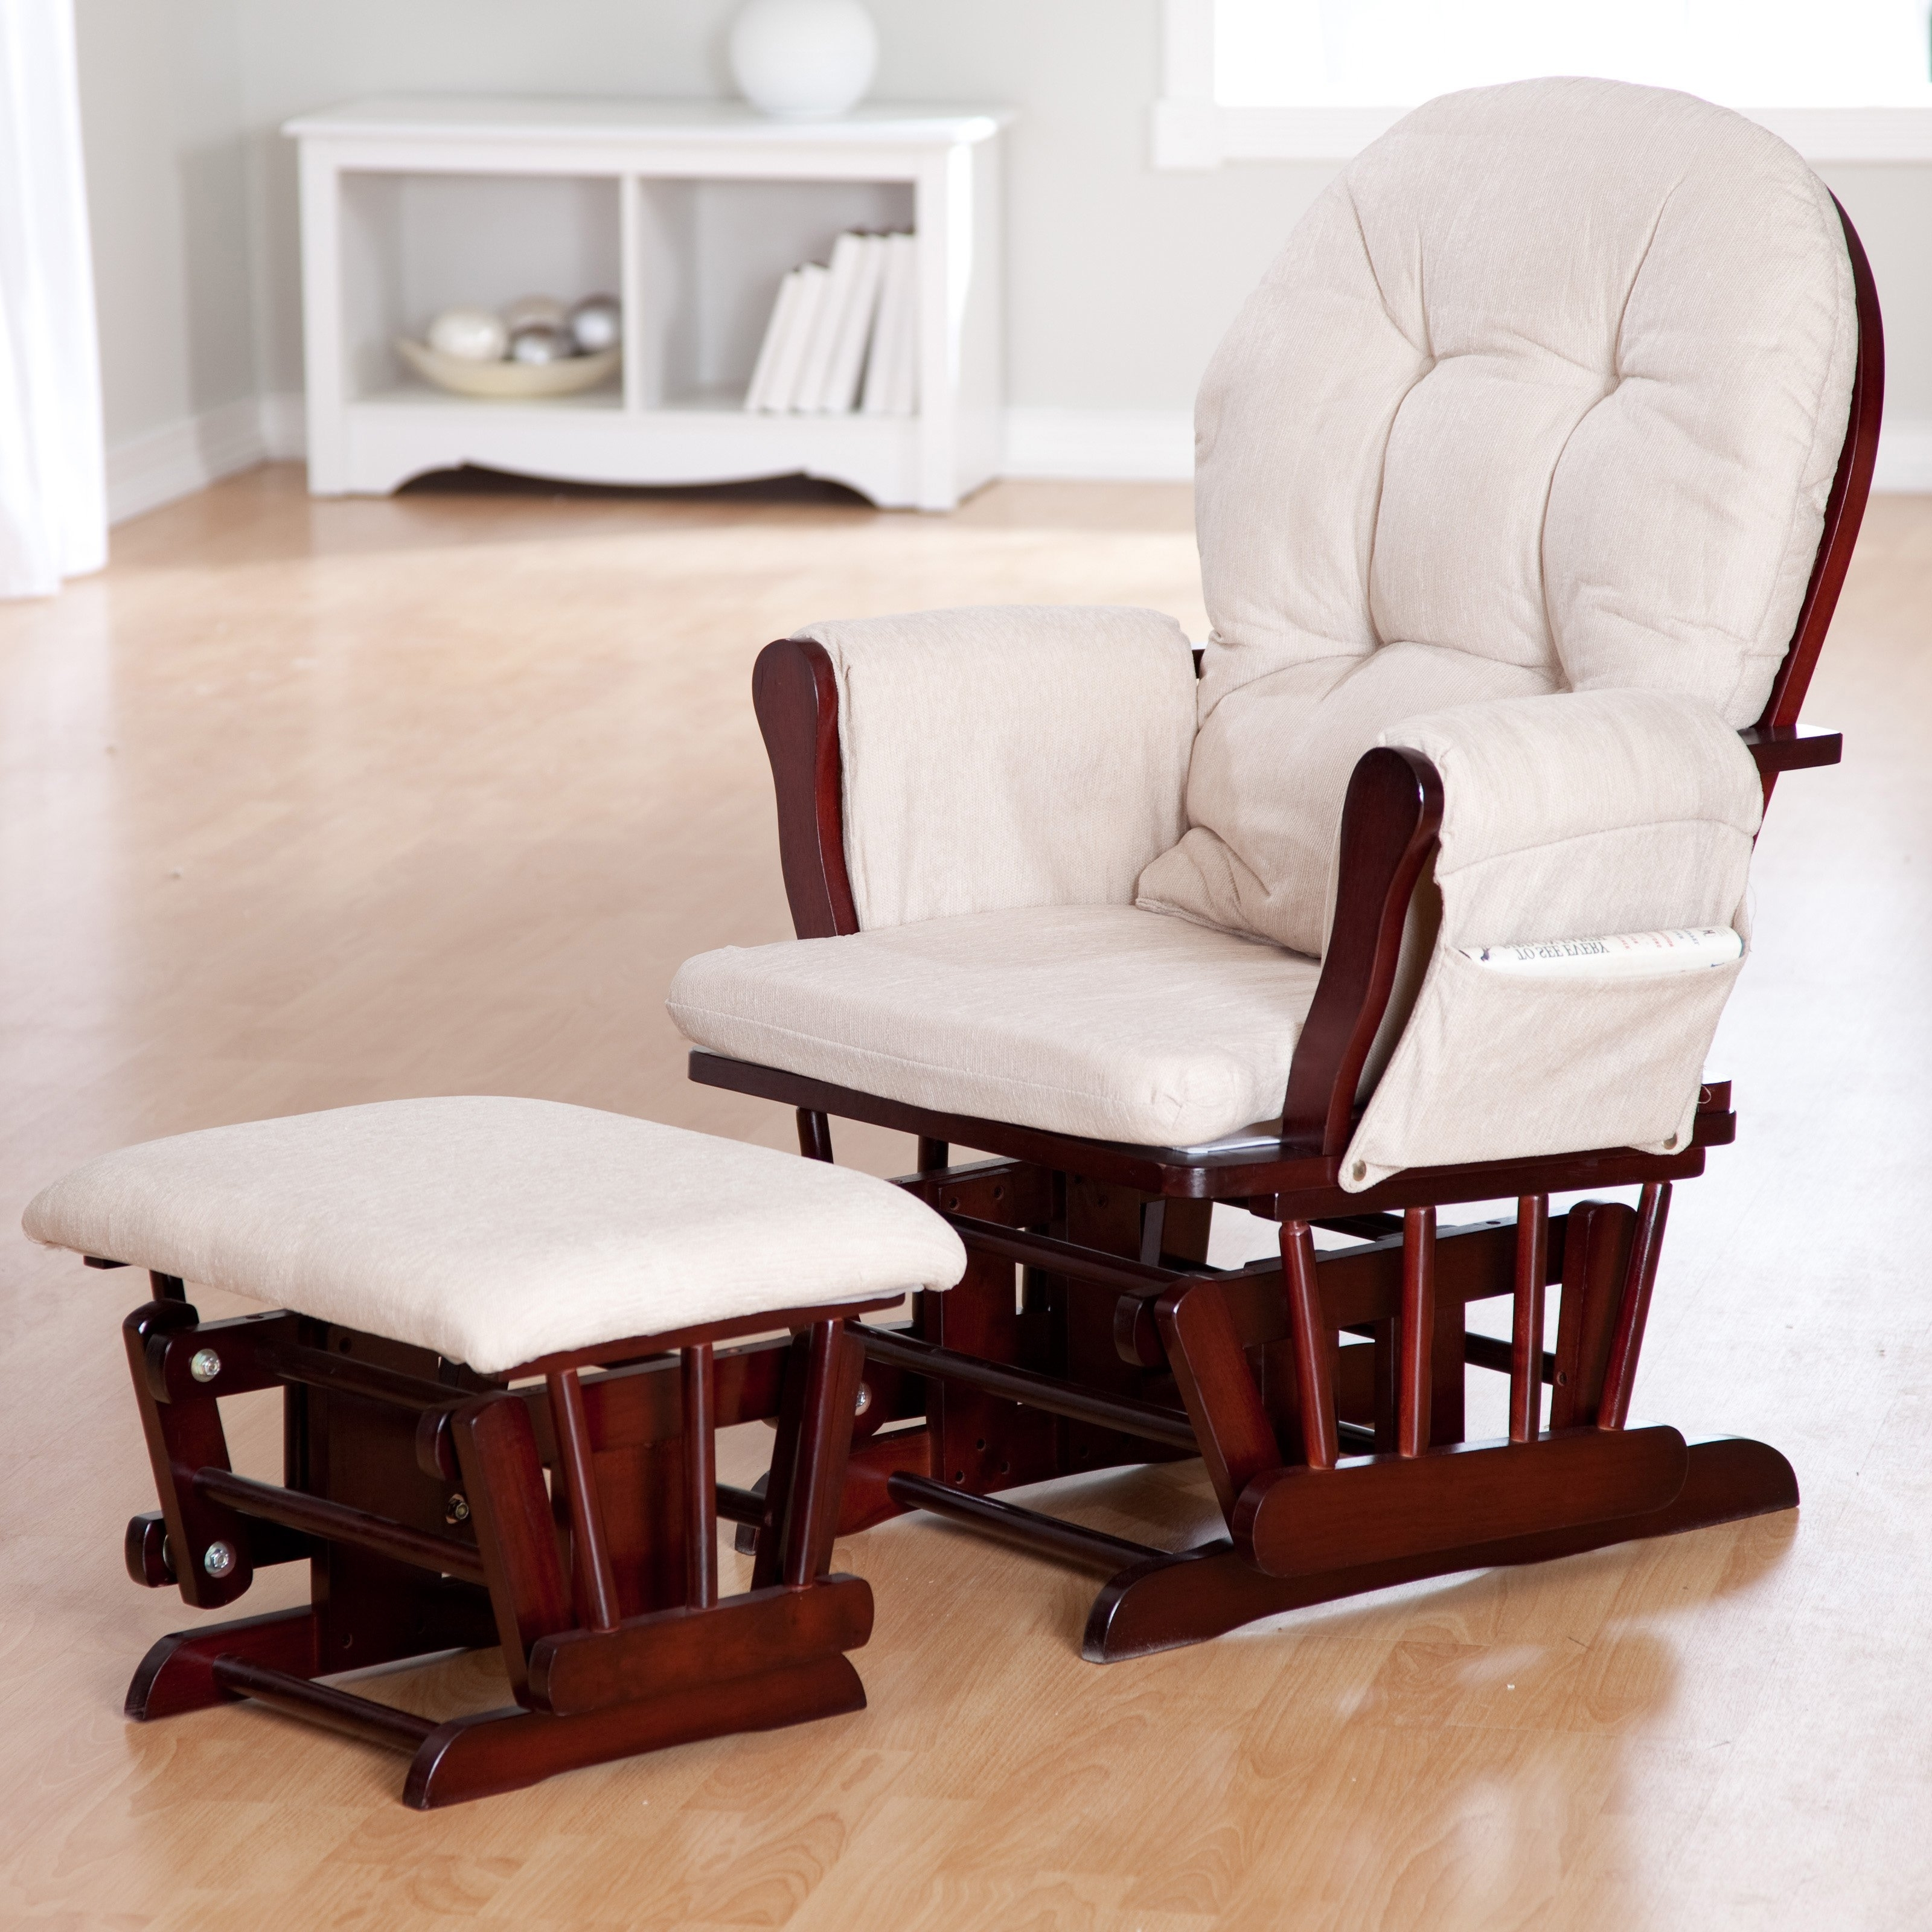 Favorite Ireland Rocking Chairs Regarding Unthinkable Nursery Rocking Chair With Ottoman Set Baby Furniture (View 6 of 20)